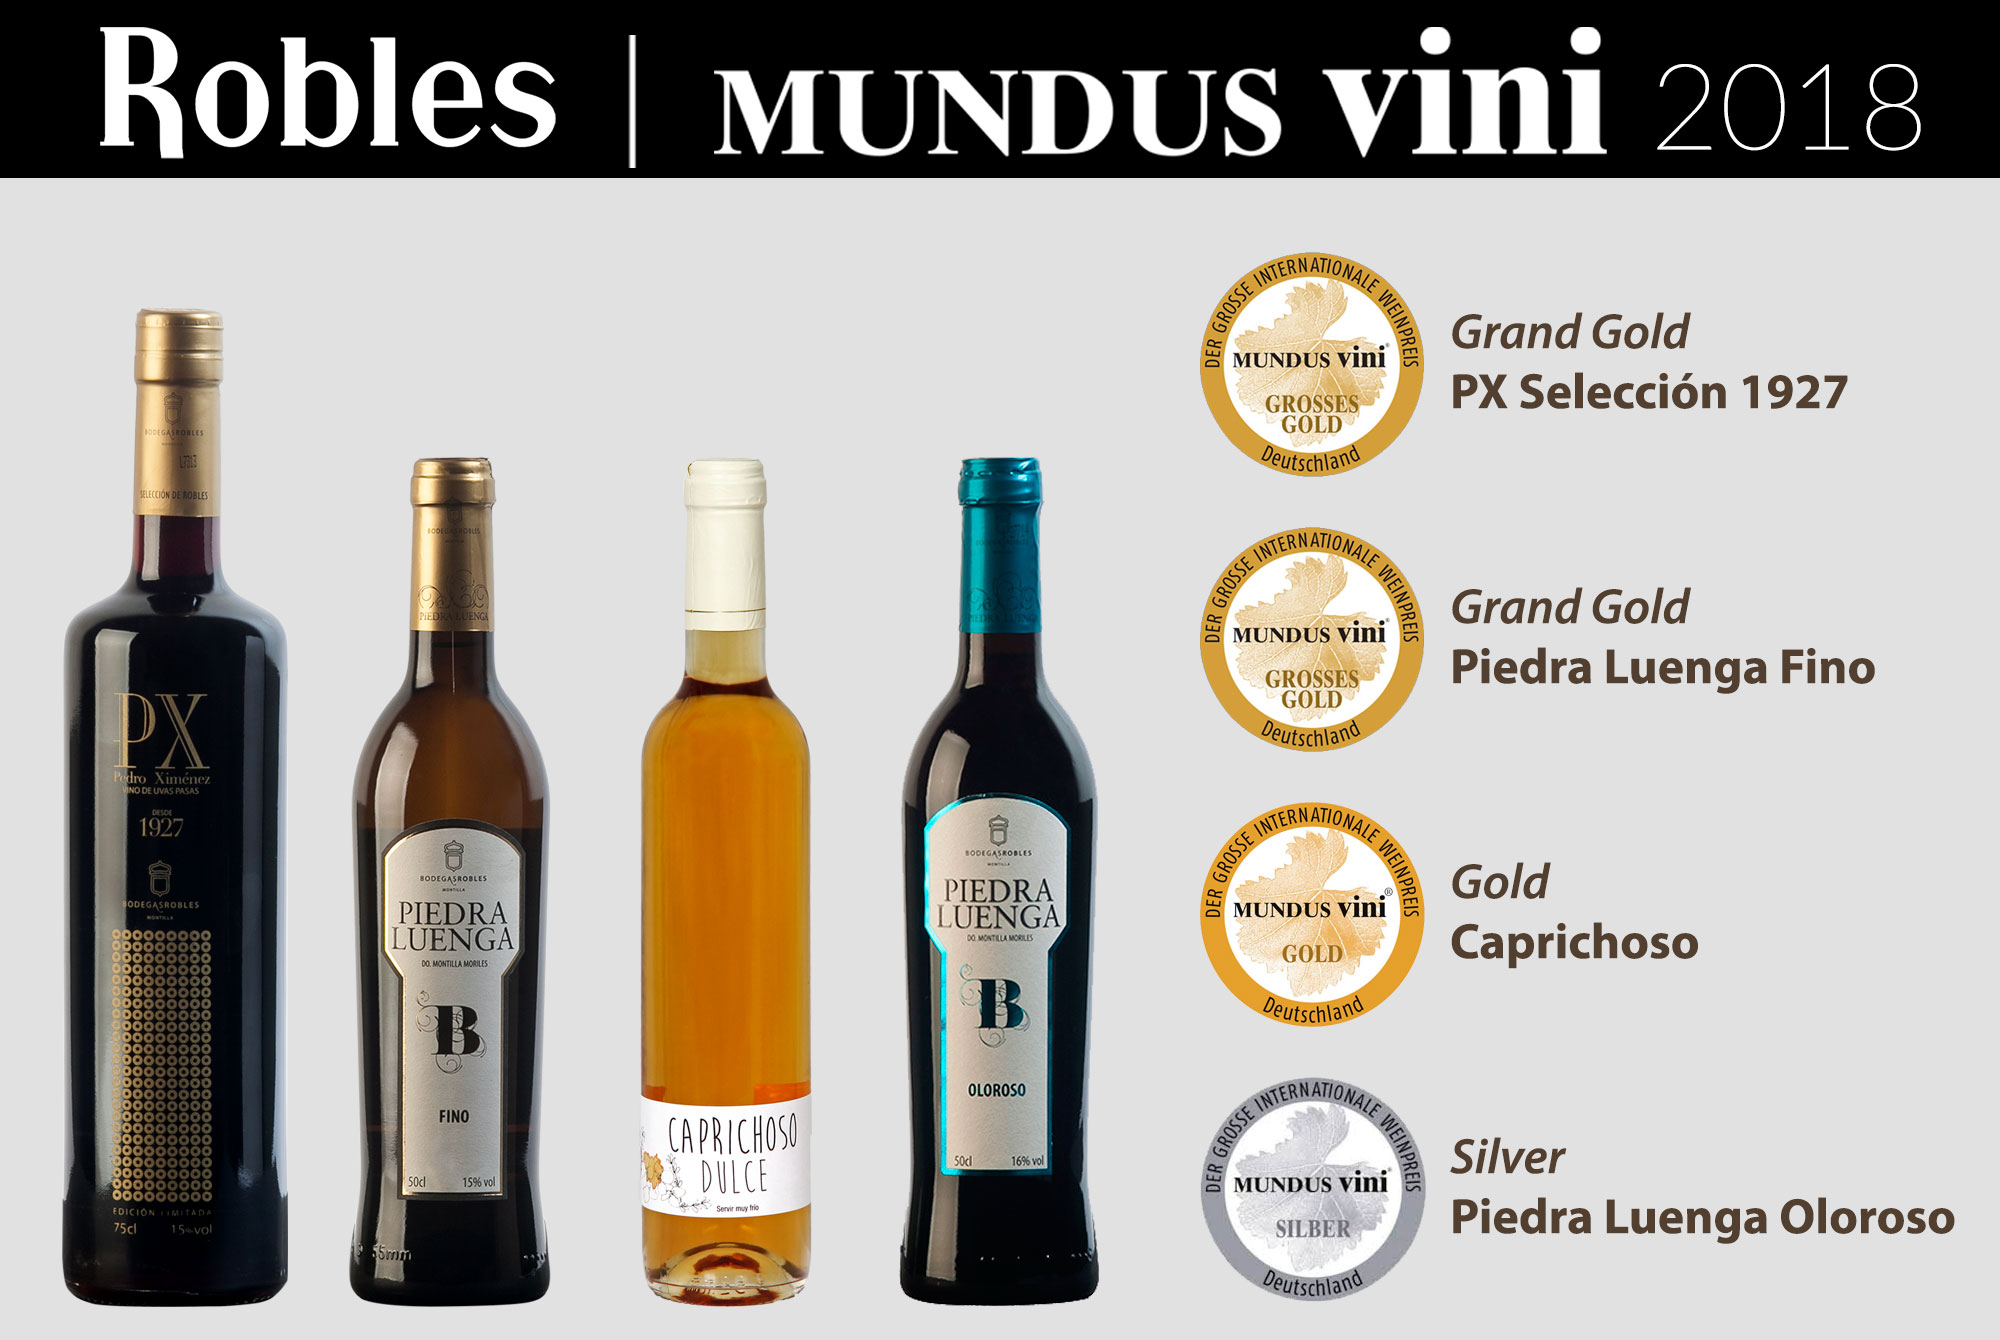 Bodegas Robles awarded in Mundus Vini, Germany